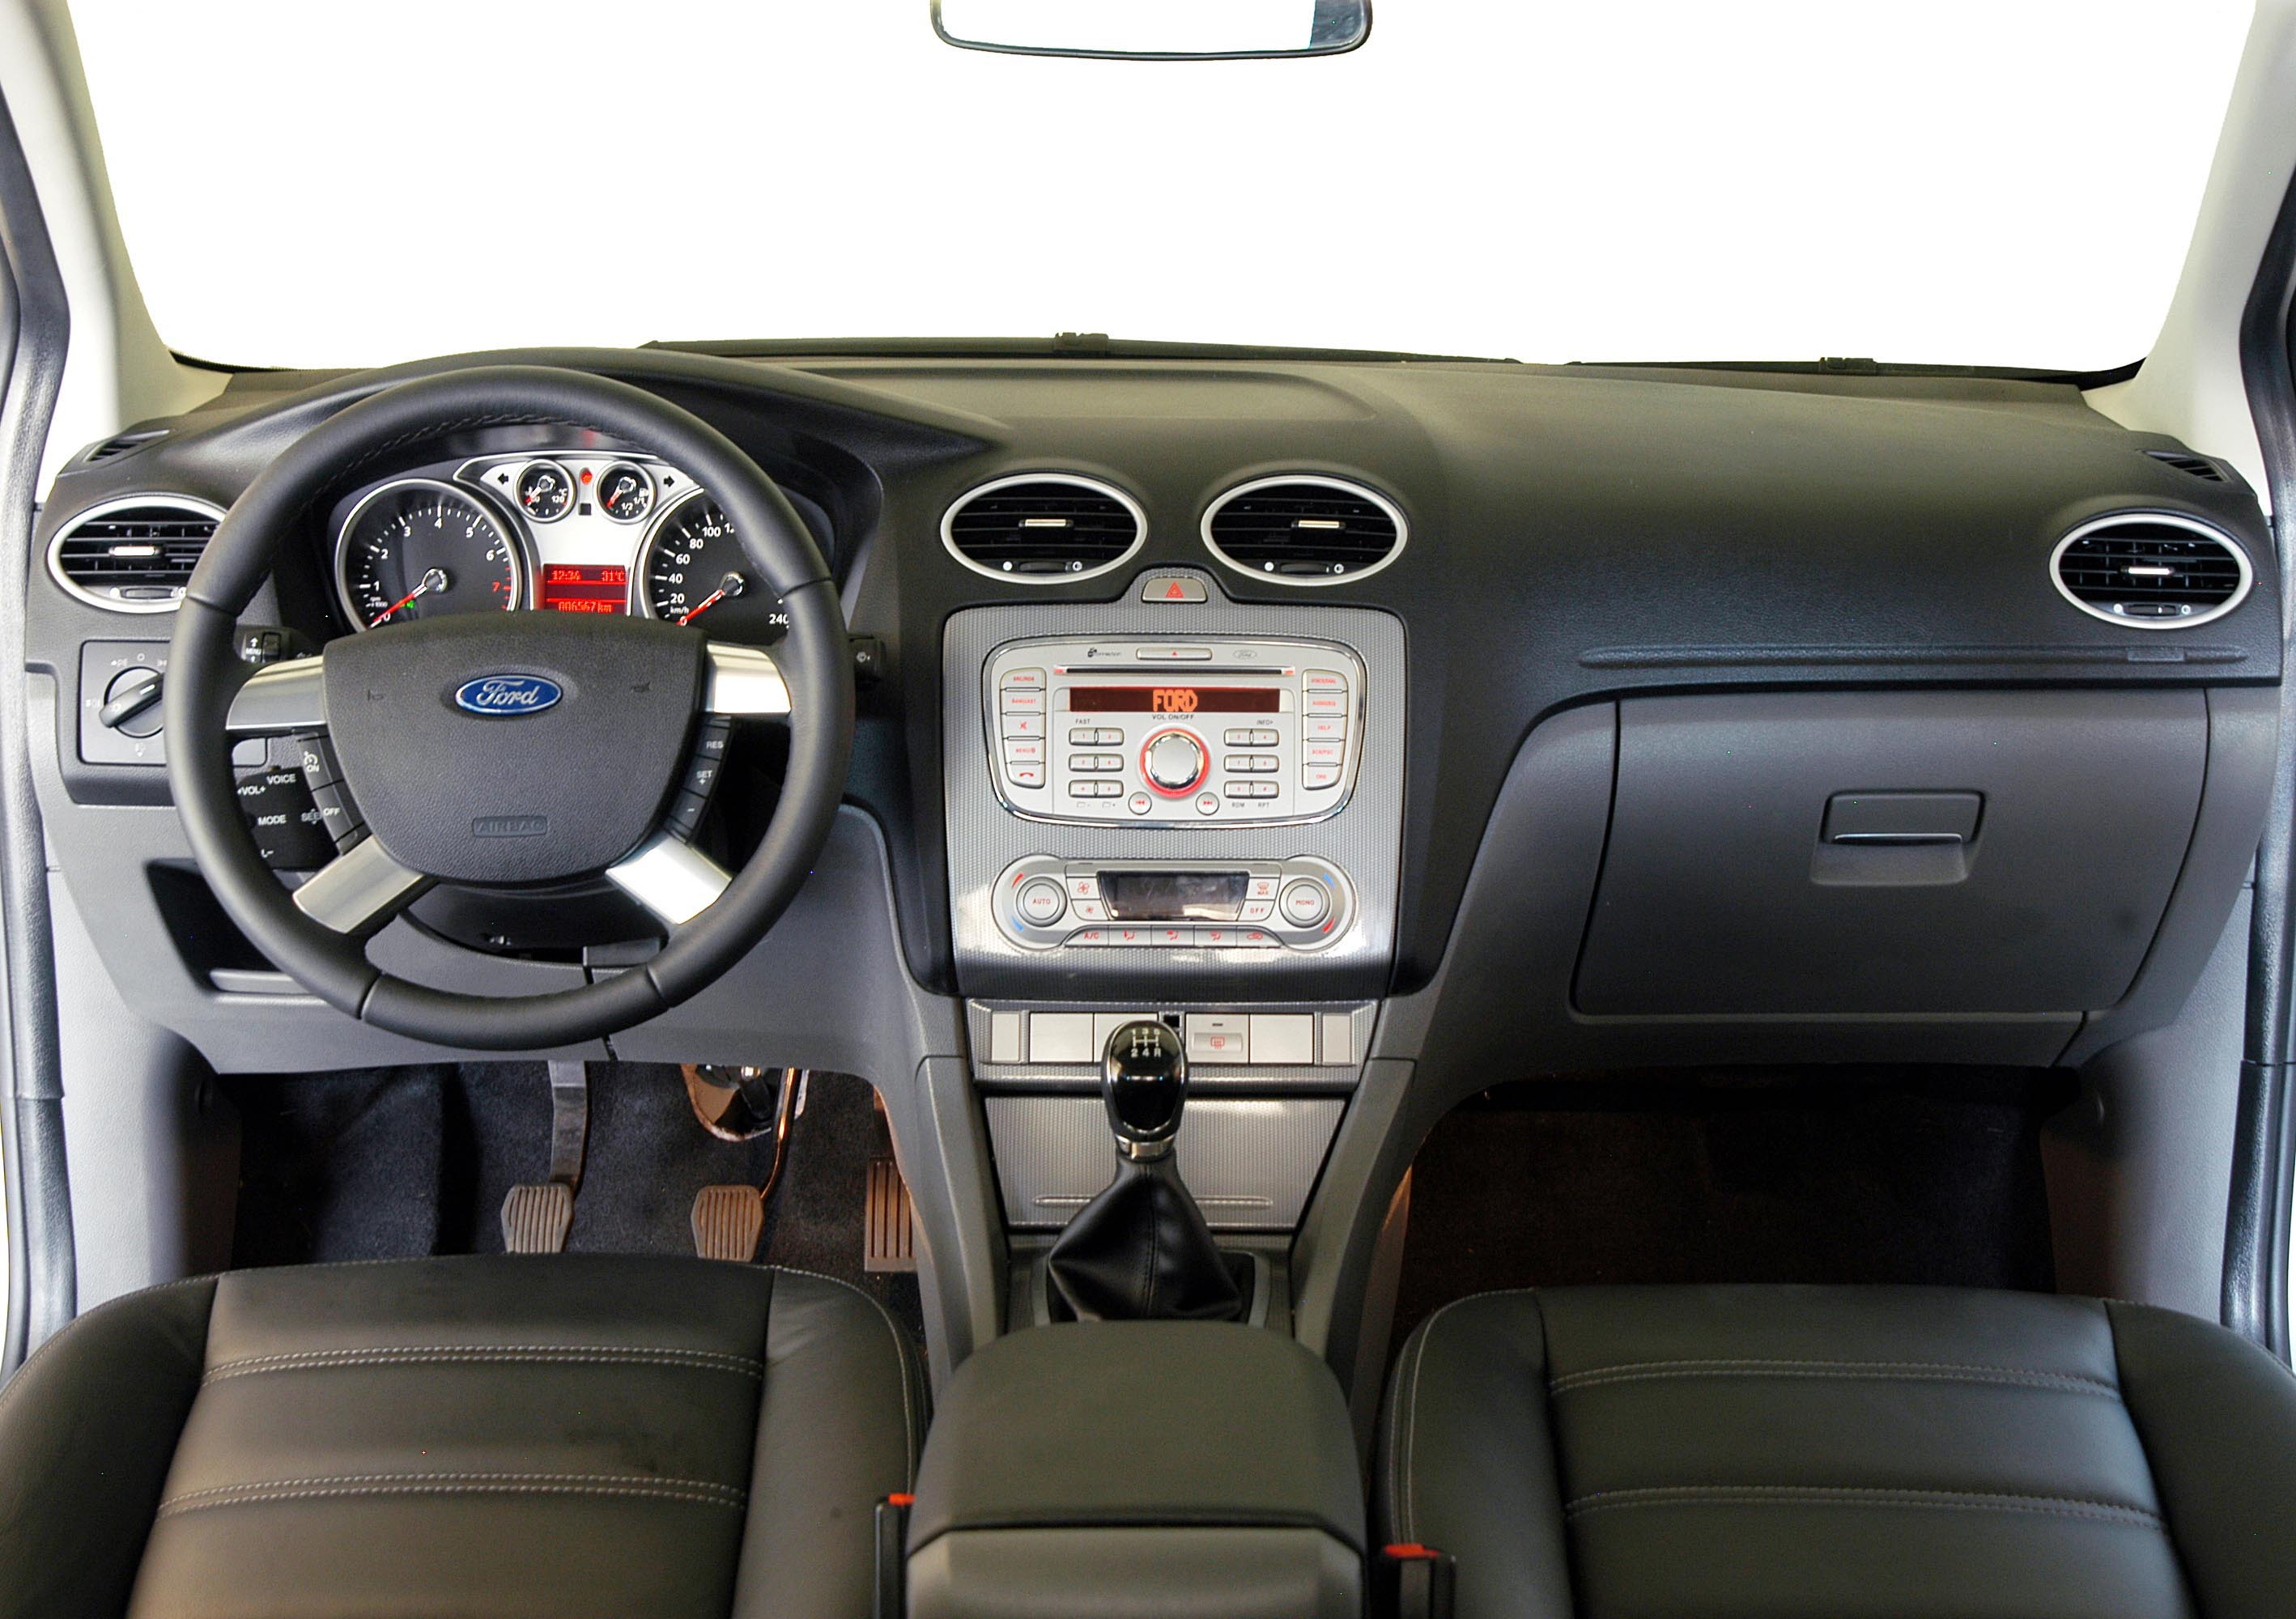 ford focus 2.0 ghia review